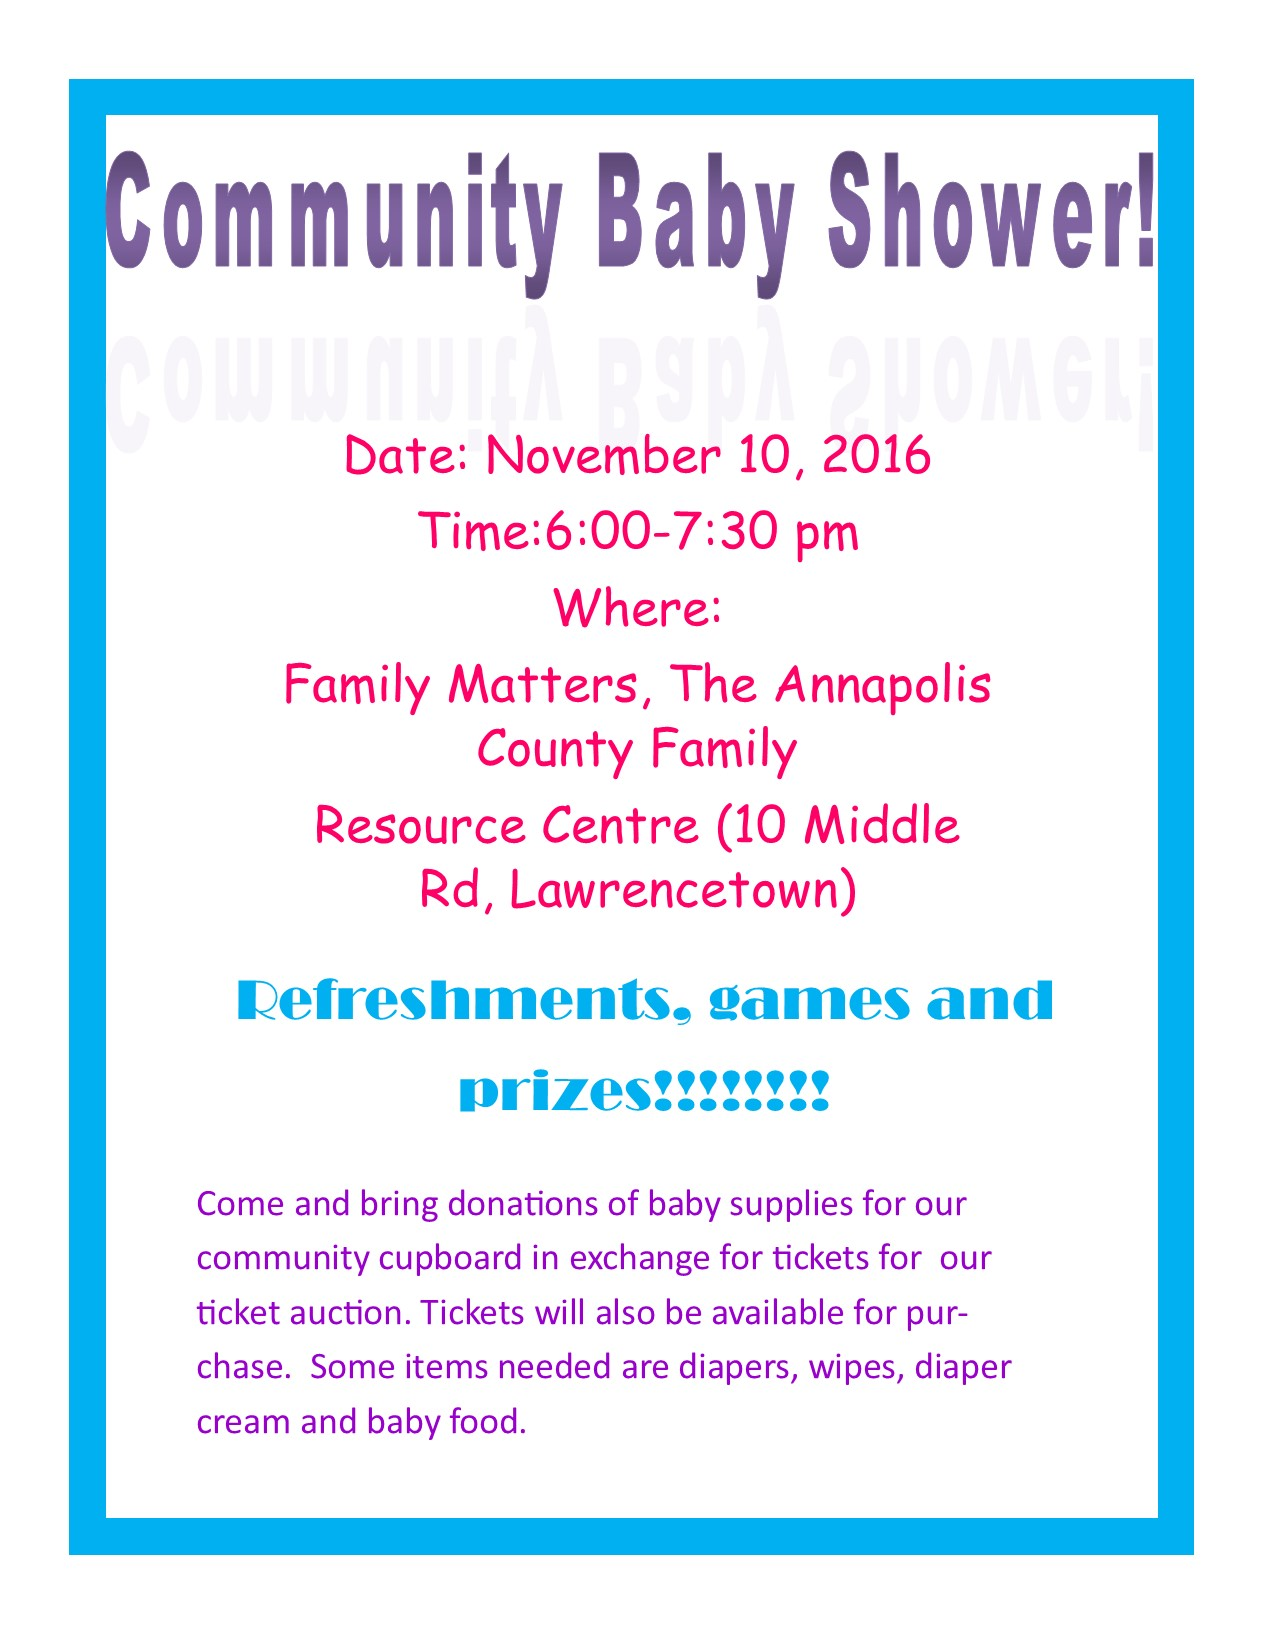 munity Baby Shower Fundraiser at Family Matters Resource Centre